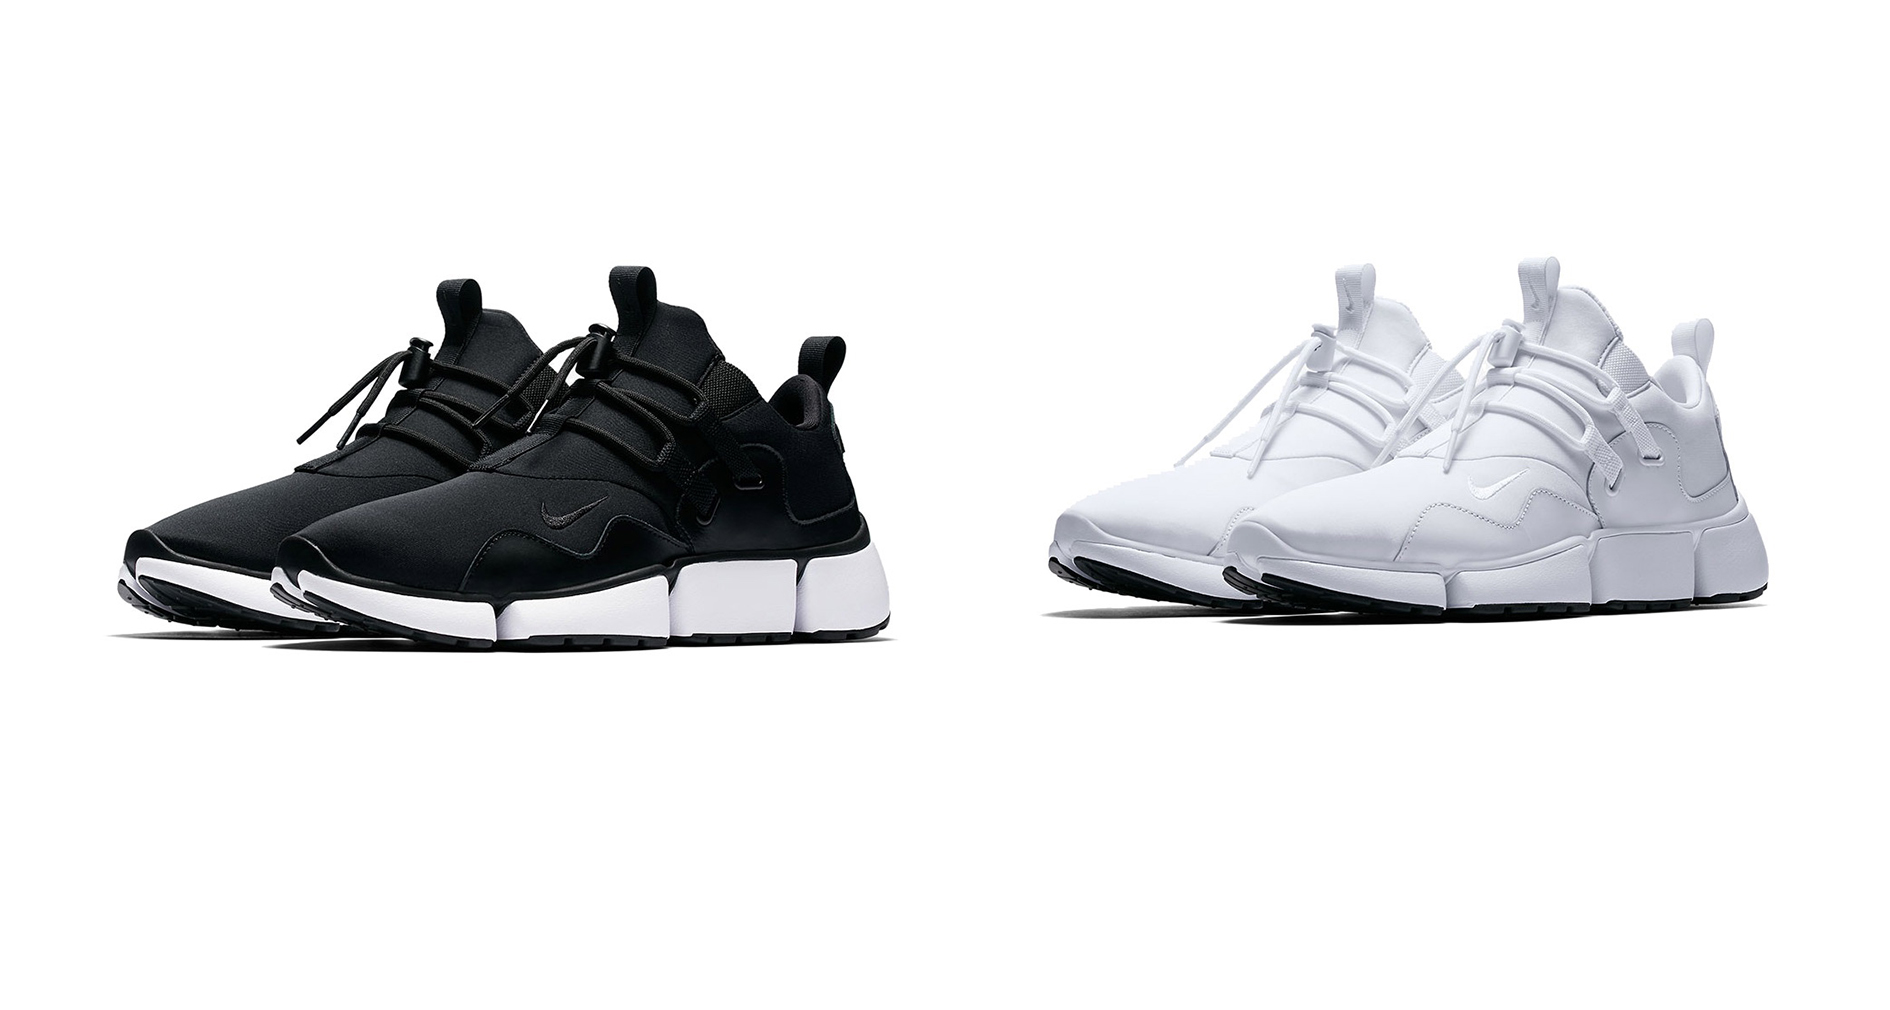 Nike's Pocket Knife DM to drop in new colourways